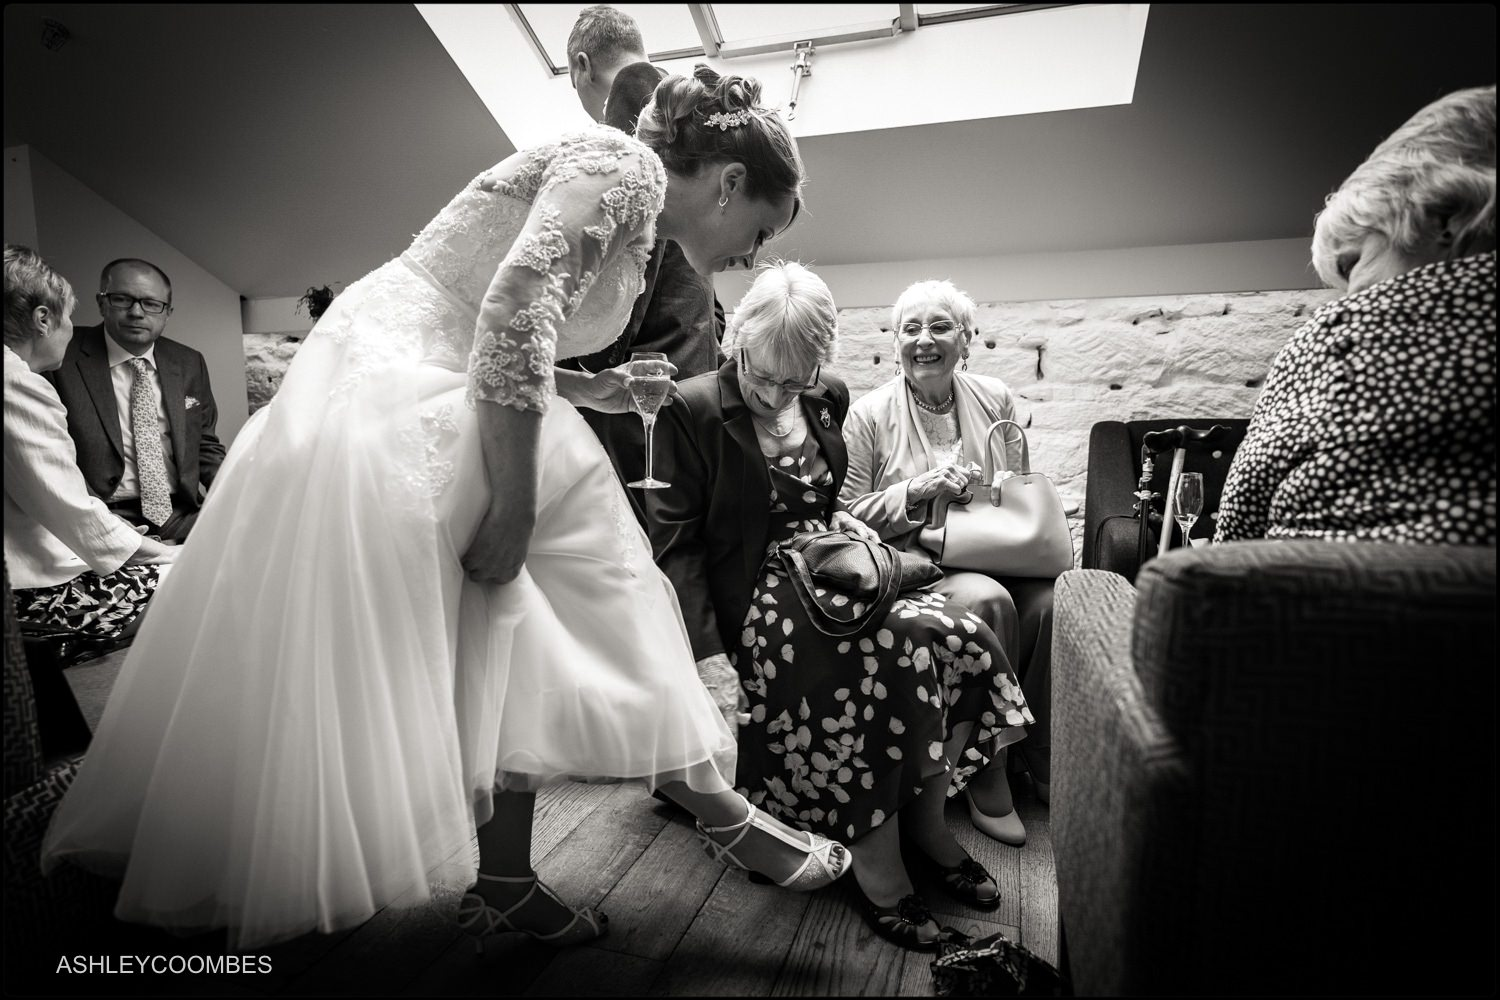 Checking out bride's shoes